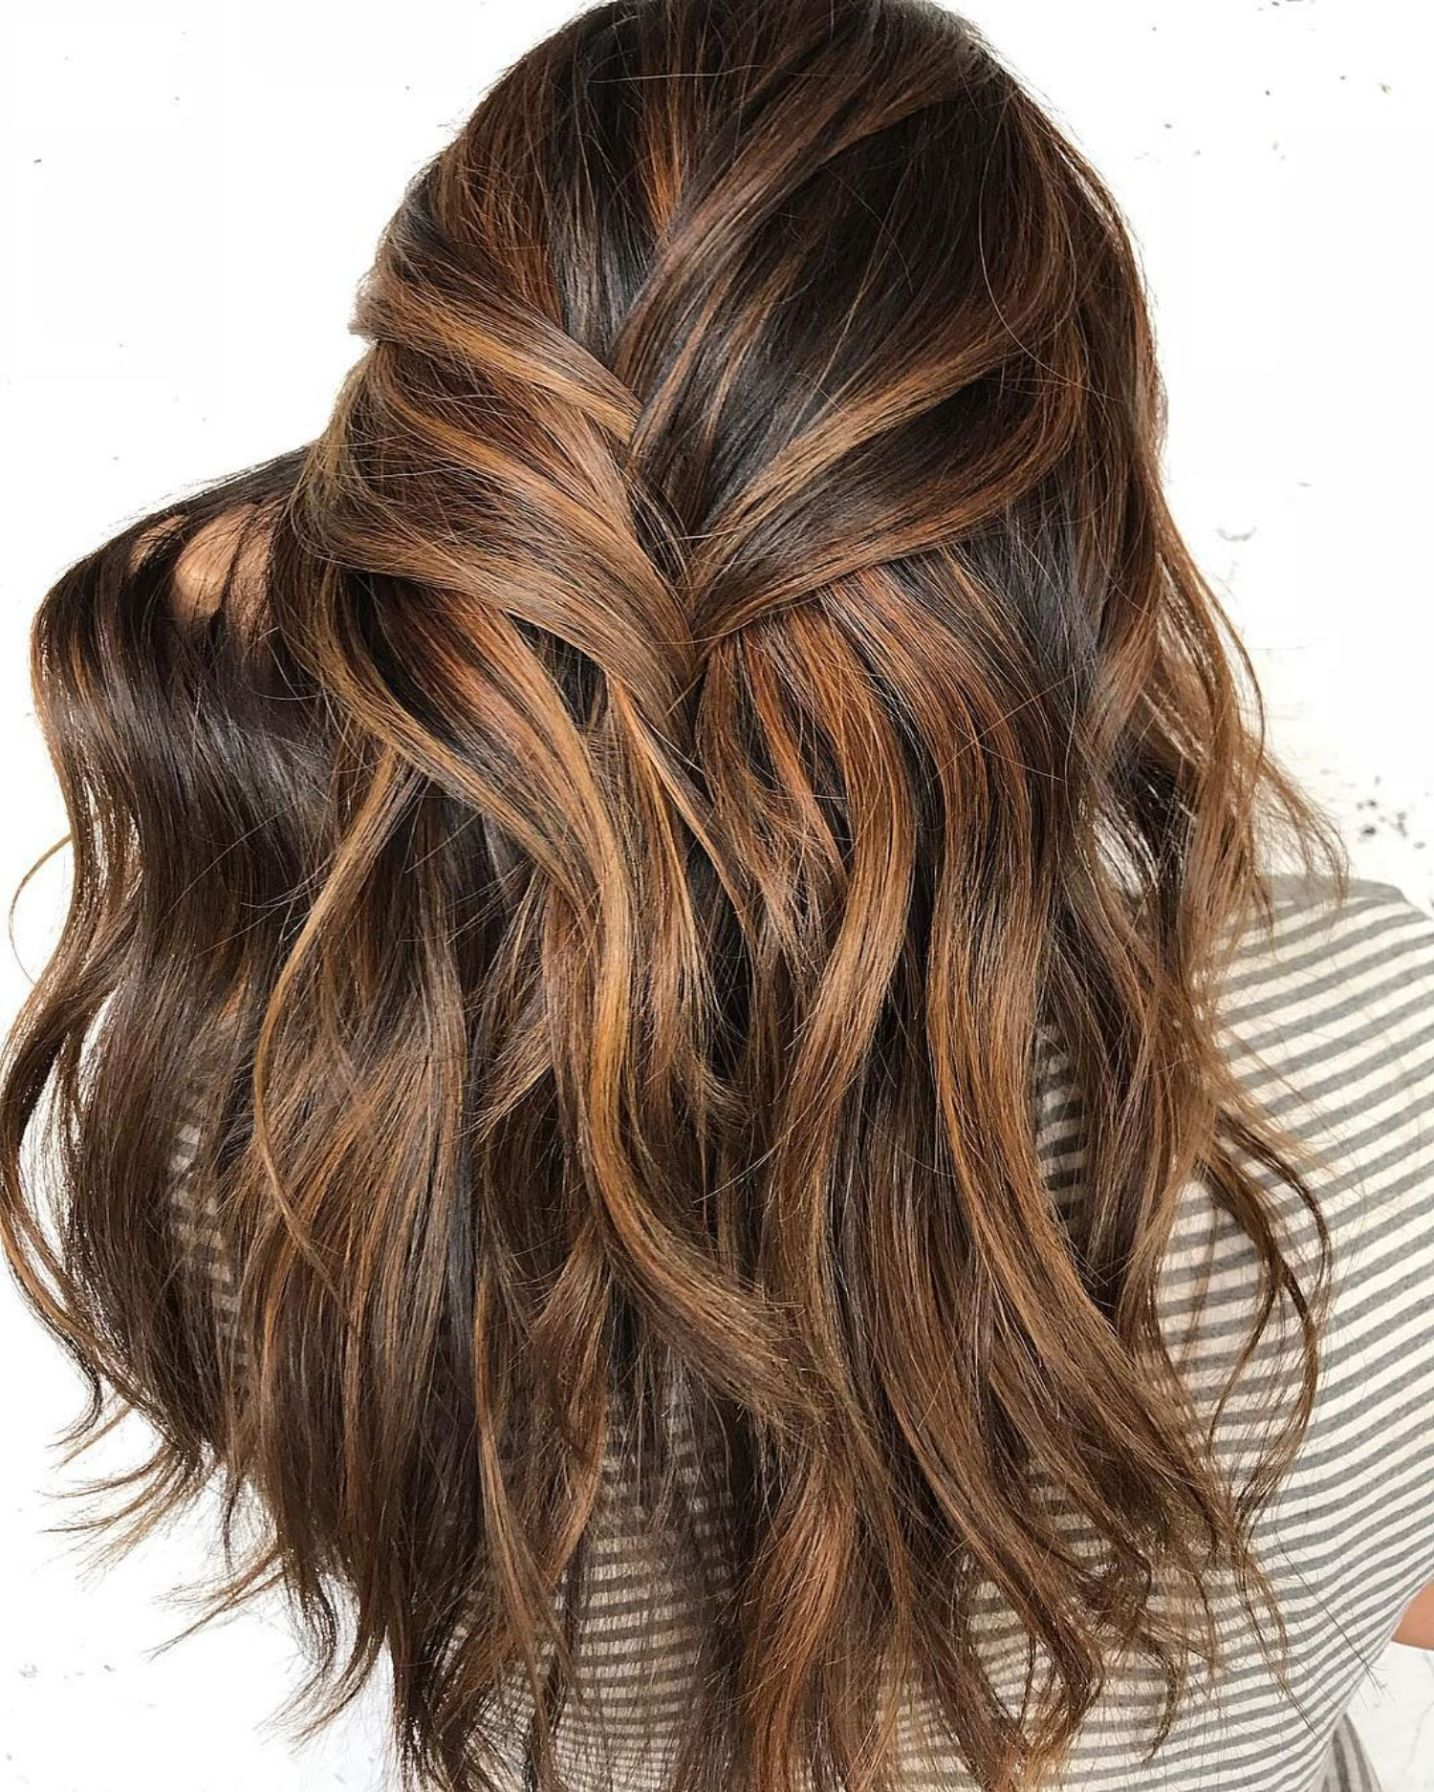 60 Chocolate Brown Hair Color Ideas For Brunettes In 2019 | Nails